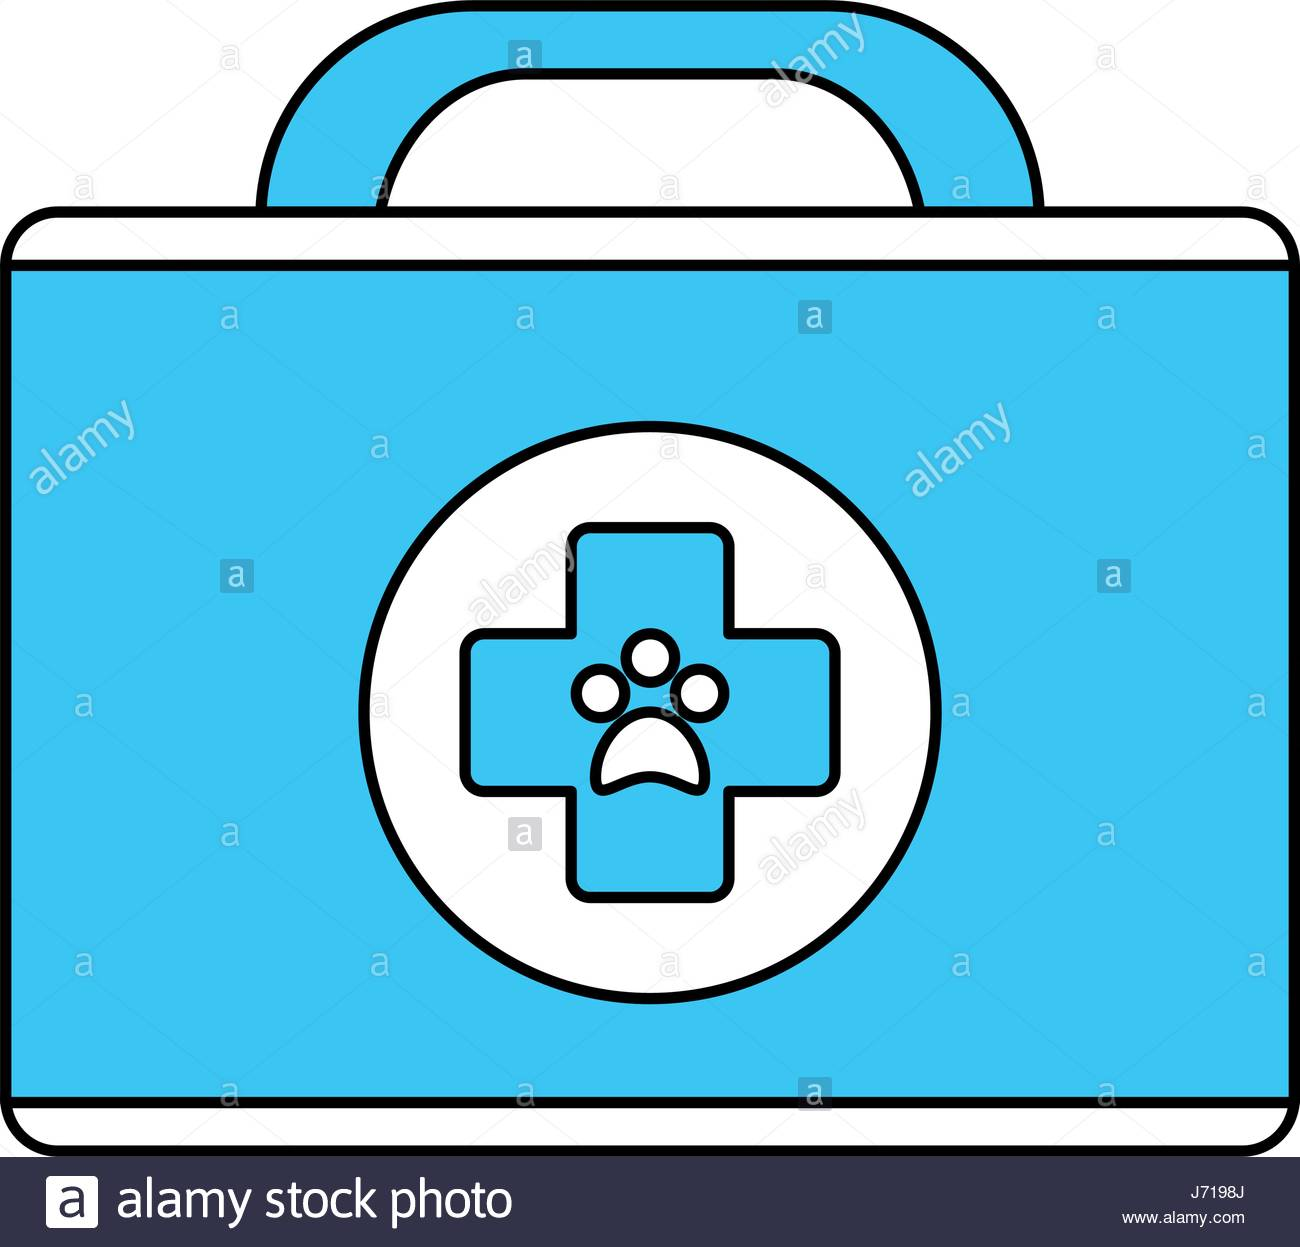 1300x1247 White And Blue Silhouette Of Cartoon Medical Veterinary Bag Stock